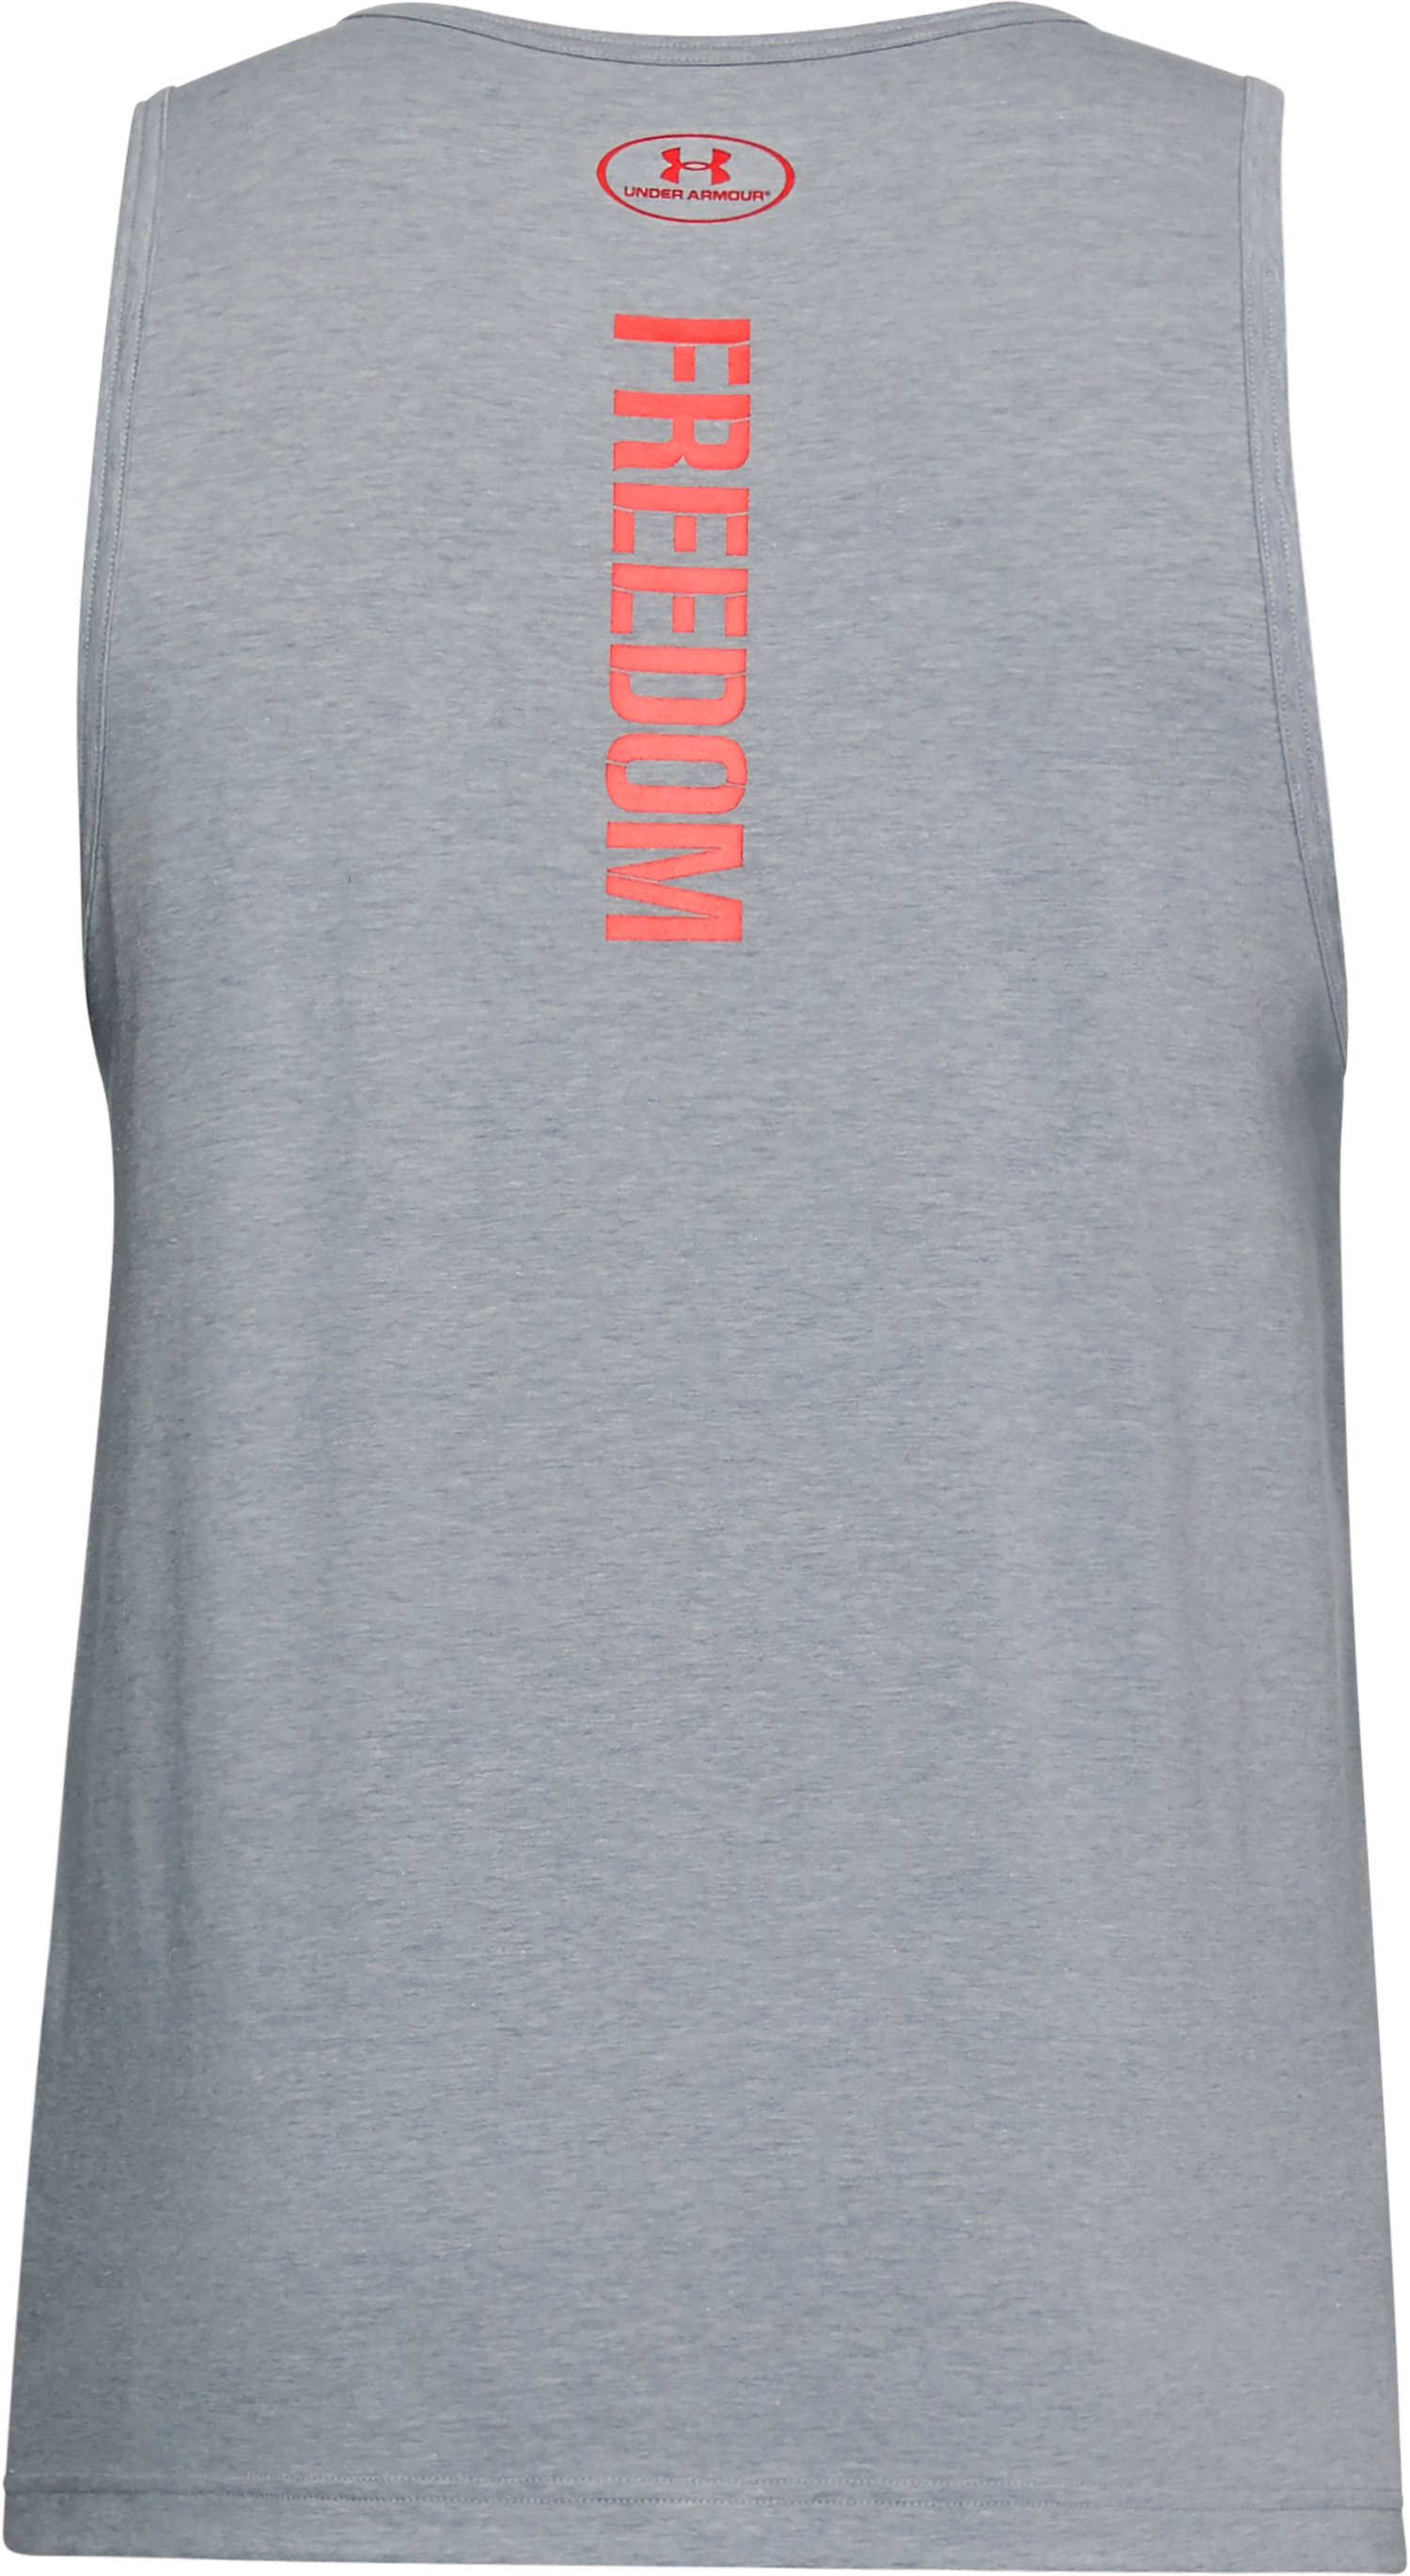 Men's UA Freedom Eagle Tank, STEEL LIGHT HEATHER,